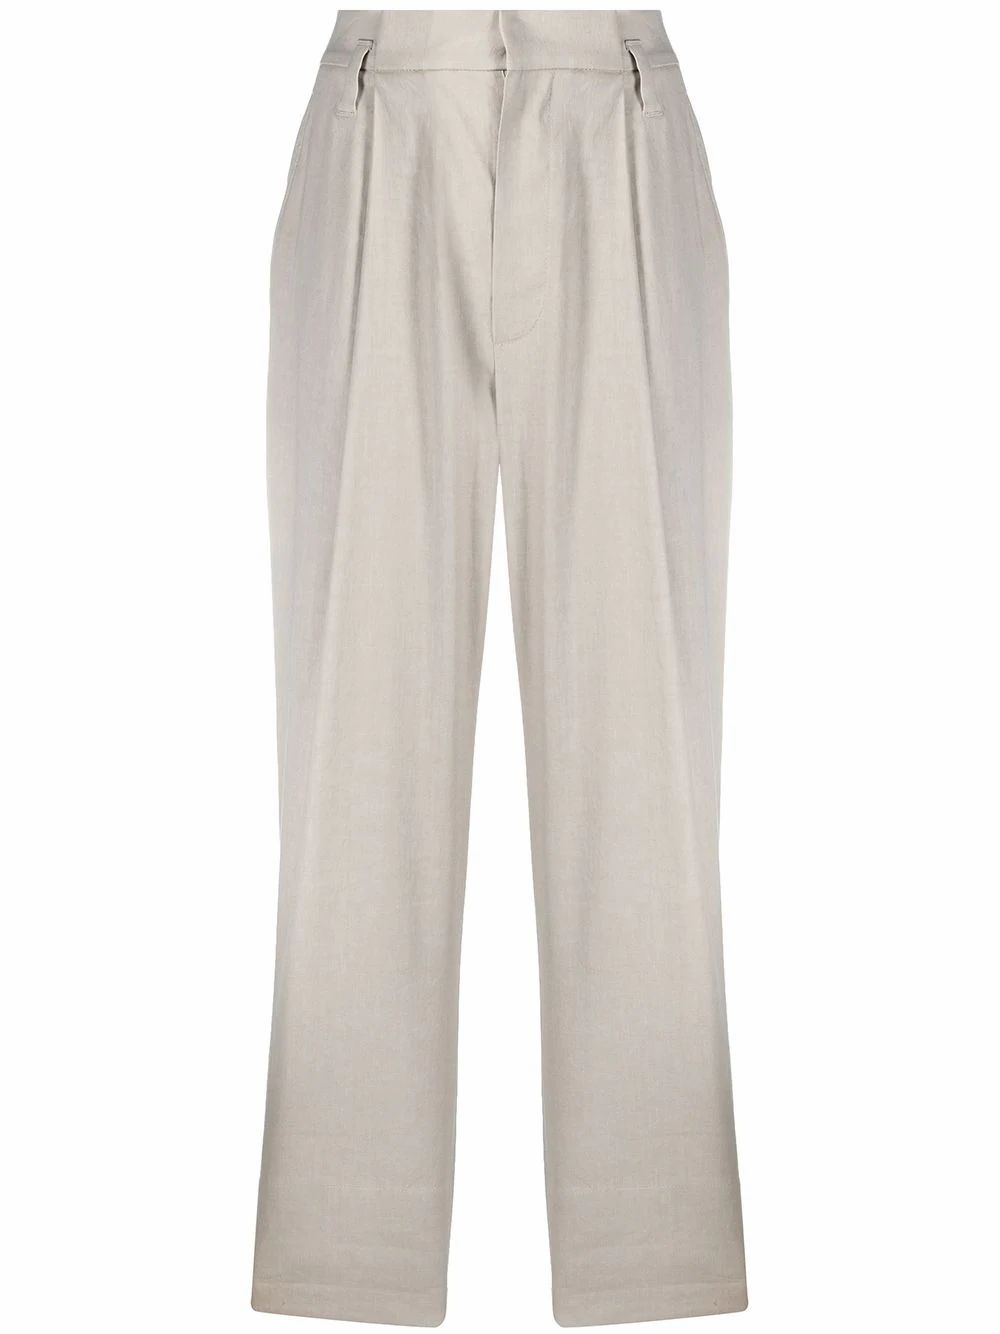 Brunello Cucinelli BRUNELLO CUCINELLI WOMEN'S GREY LINEN PANTS